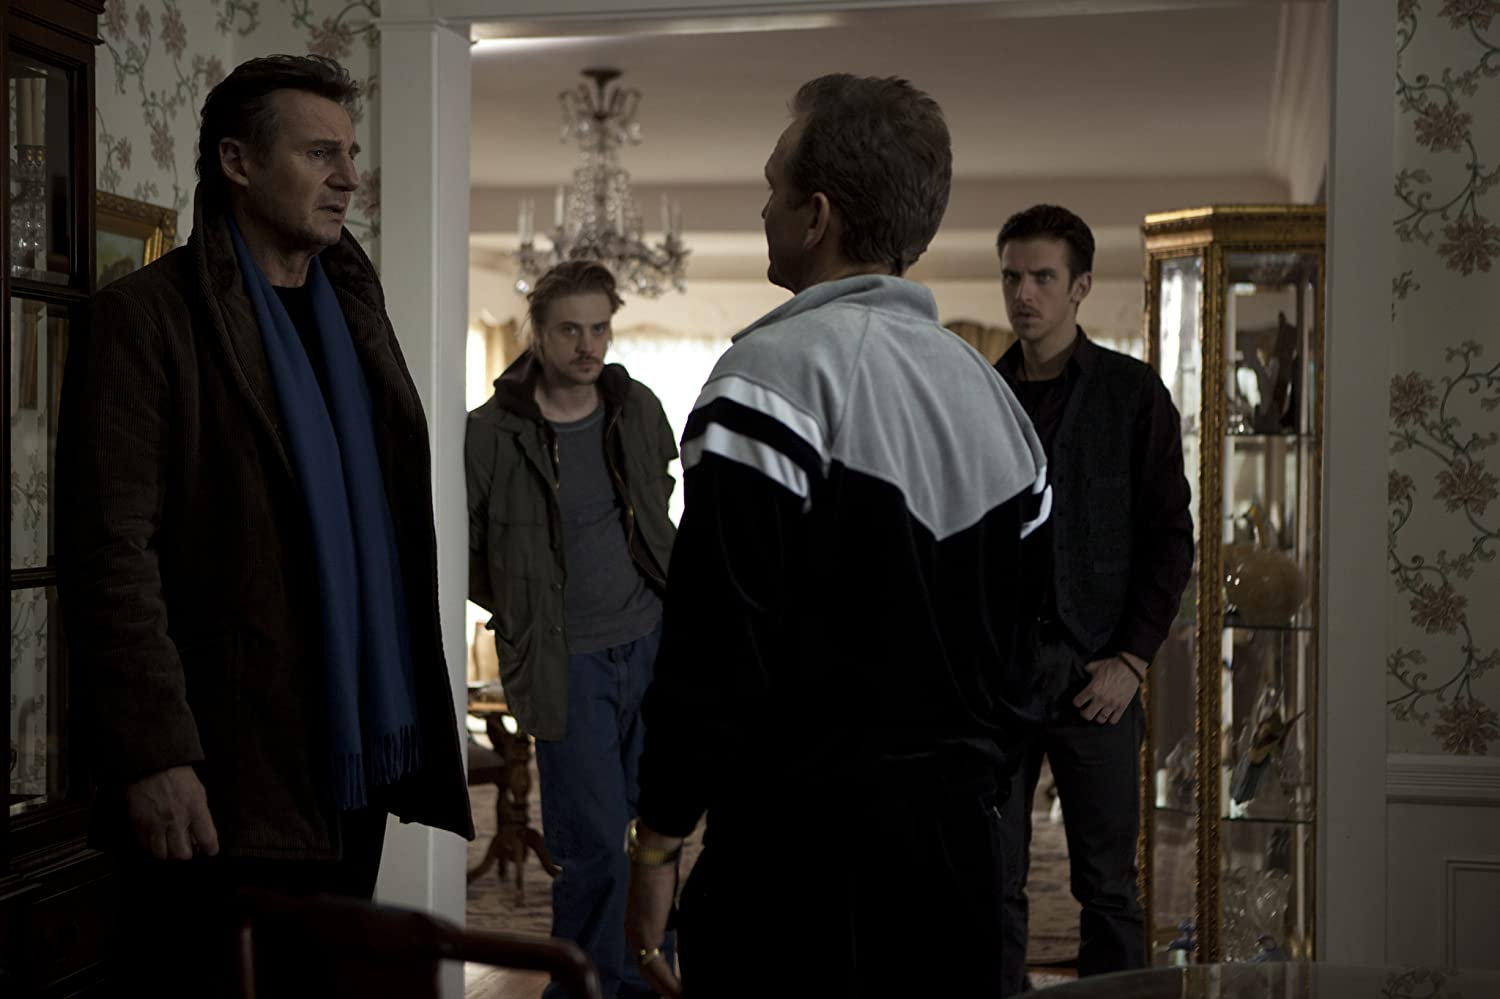 Liam Neeson, Dan Stevens, Eric Nelsen, and Boyd Holbrook in A Walk Among the Tombstones (2014)